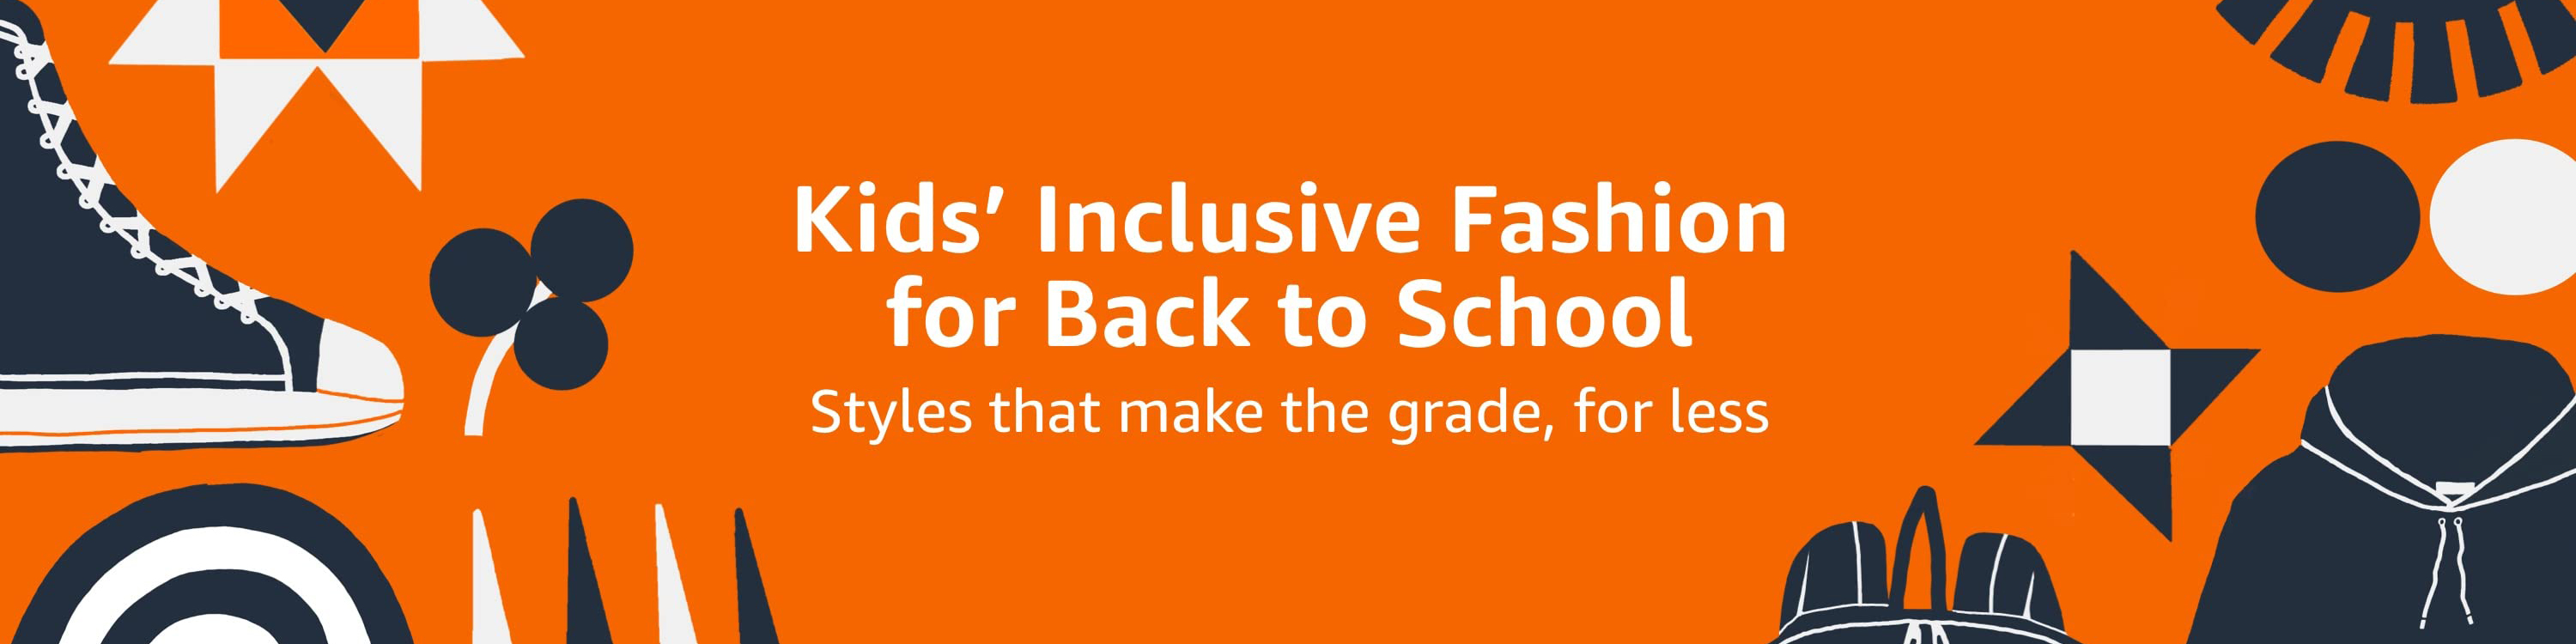 Kids' Inclusive Fashion for Back to School